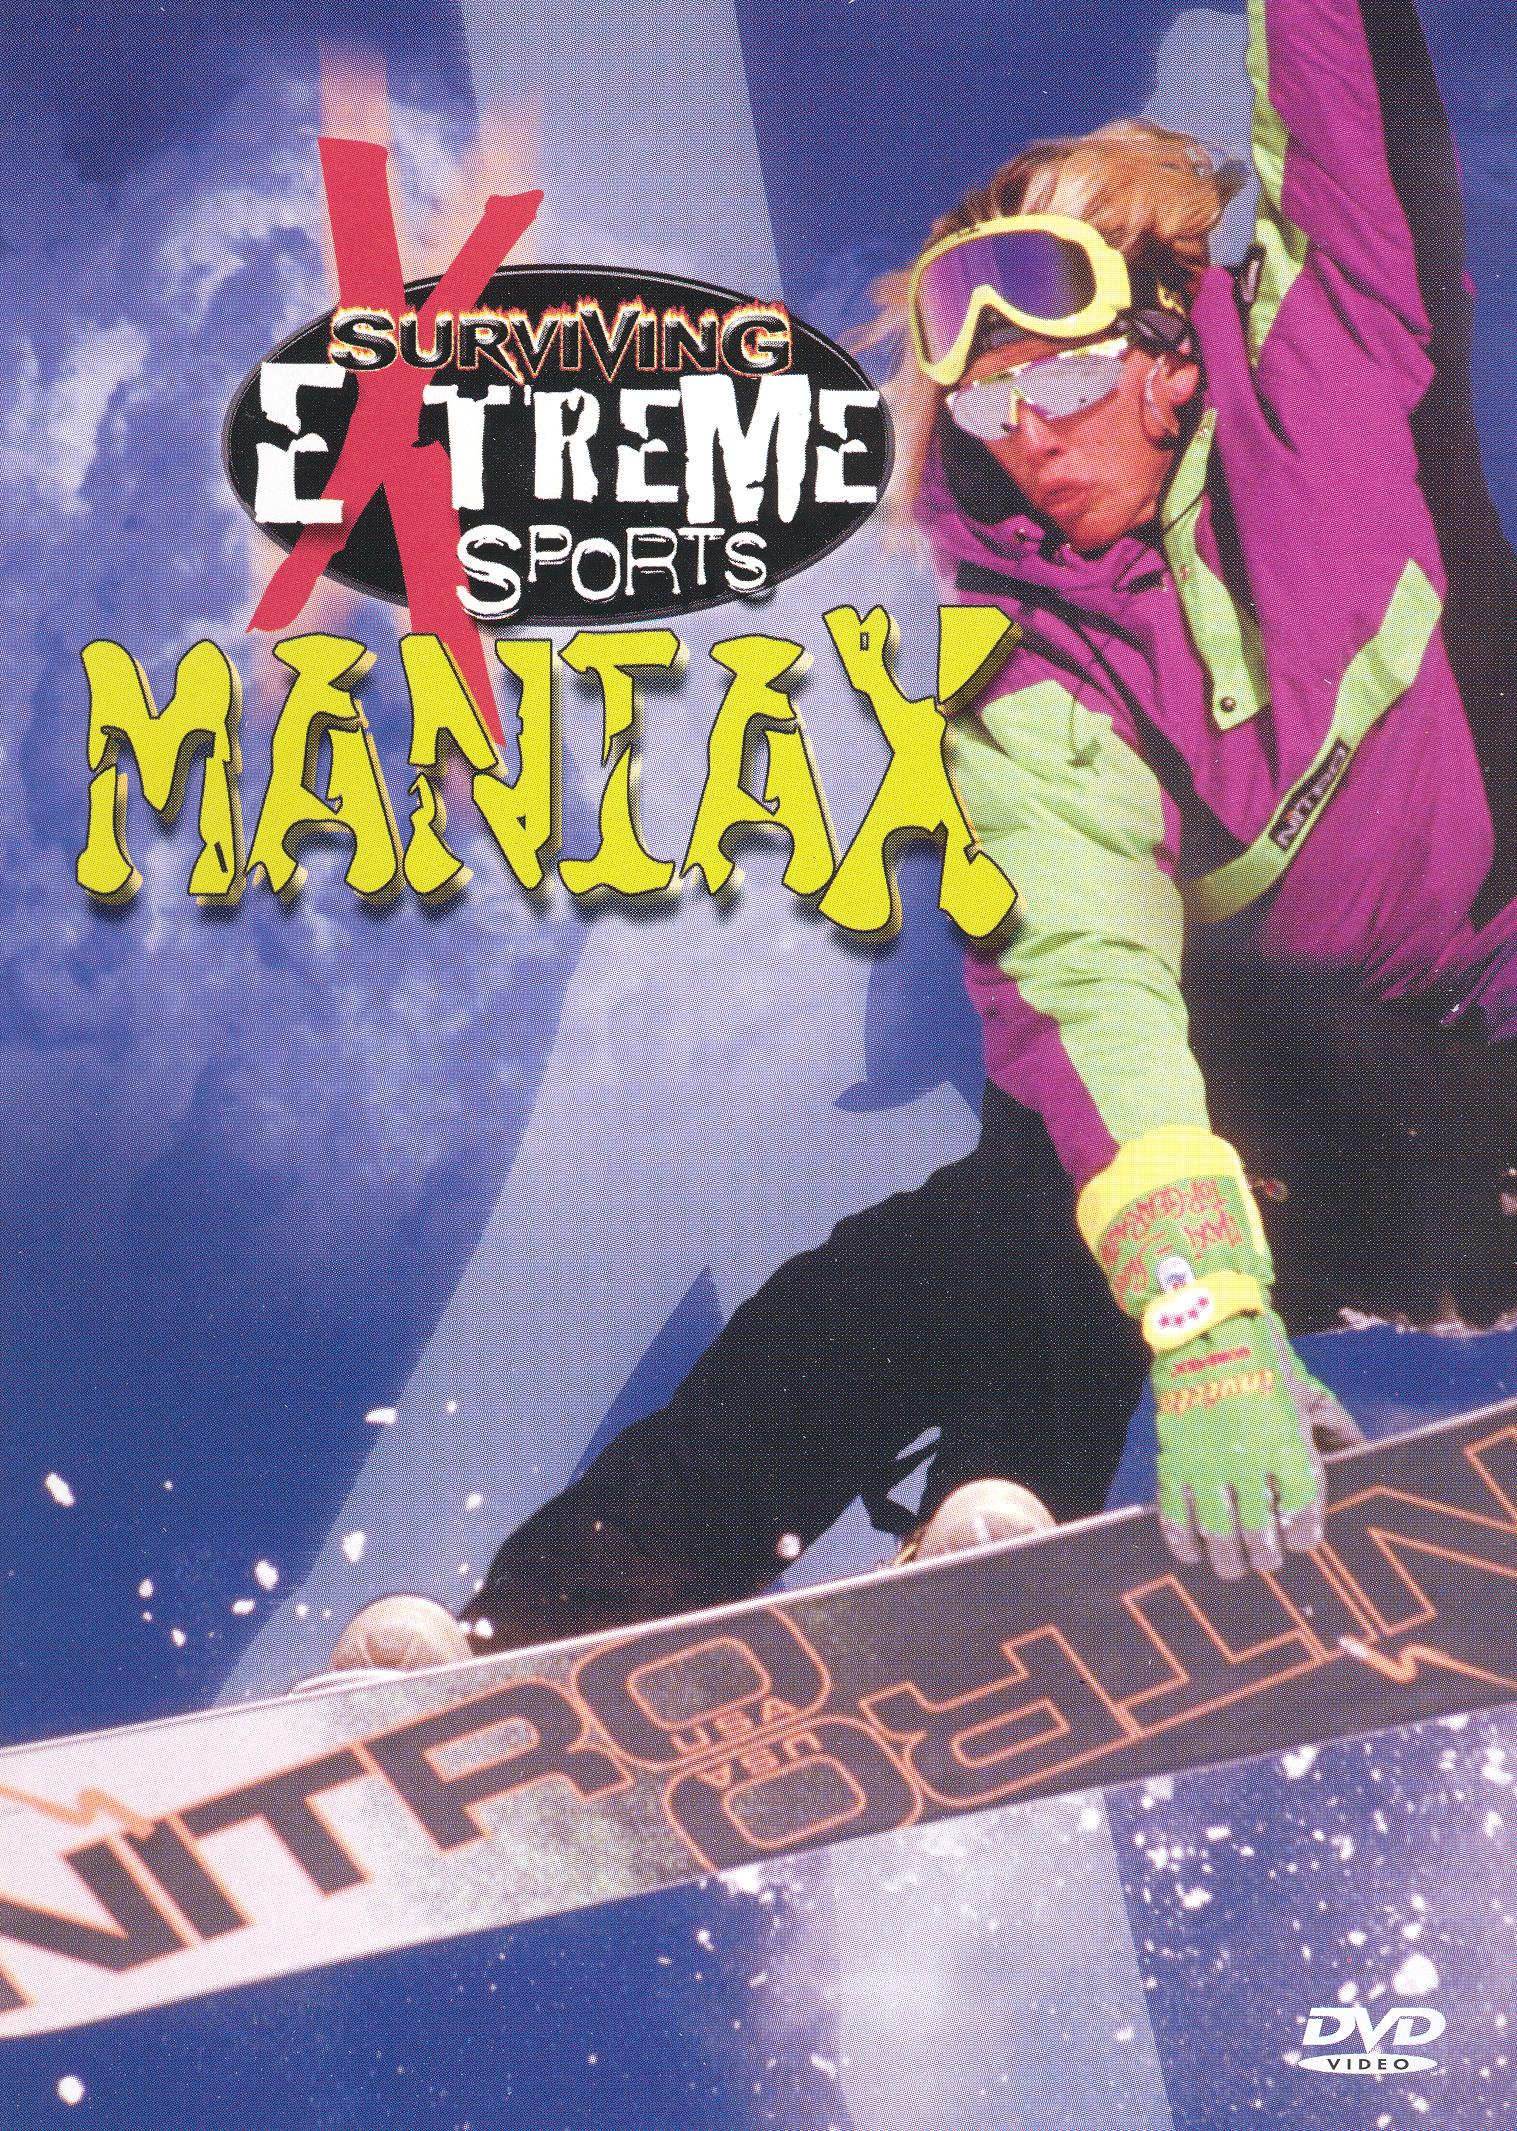 Surviving Extreme Sports: Maniax